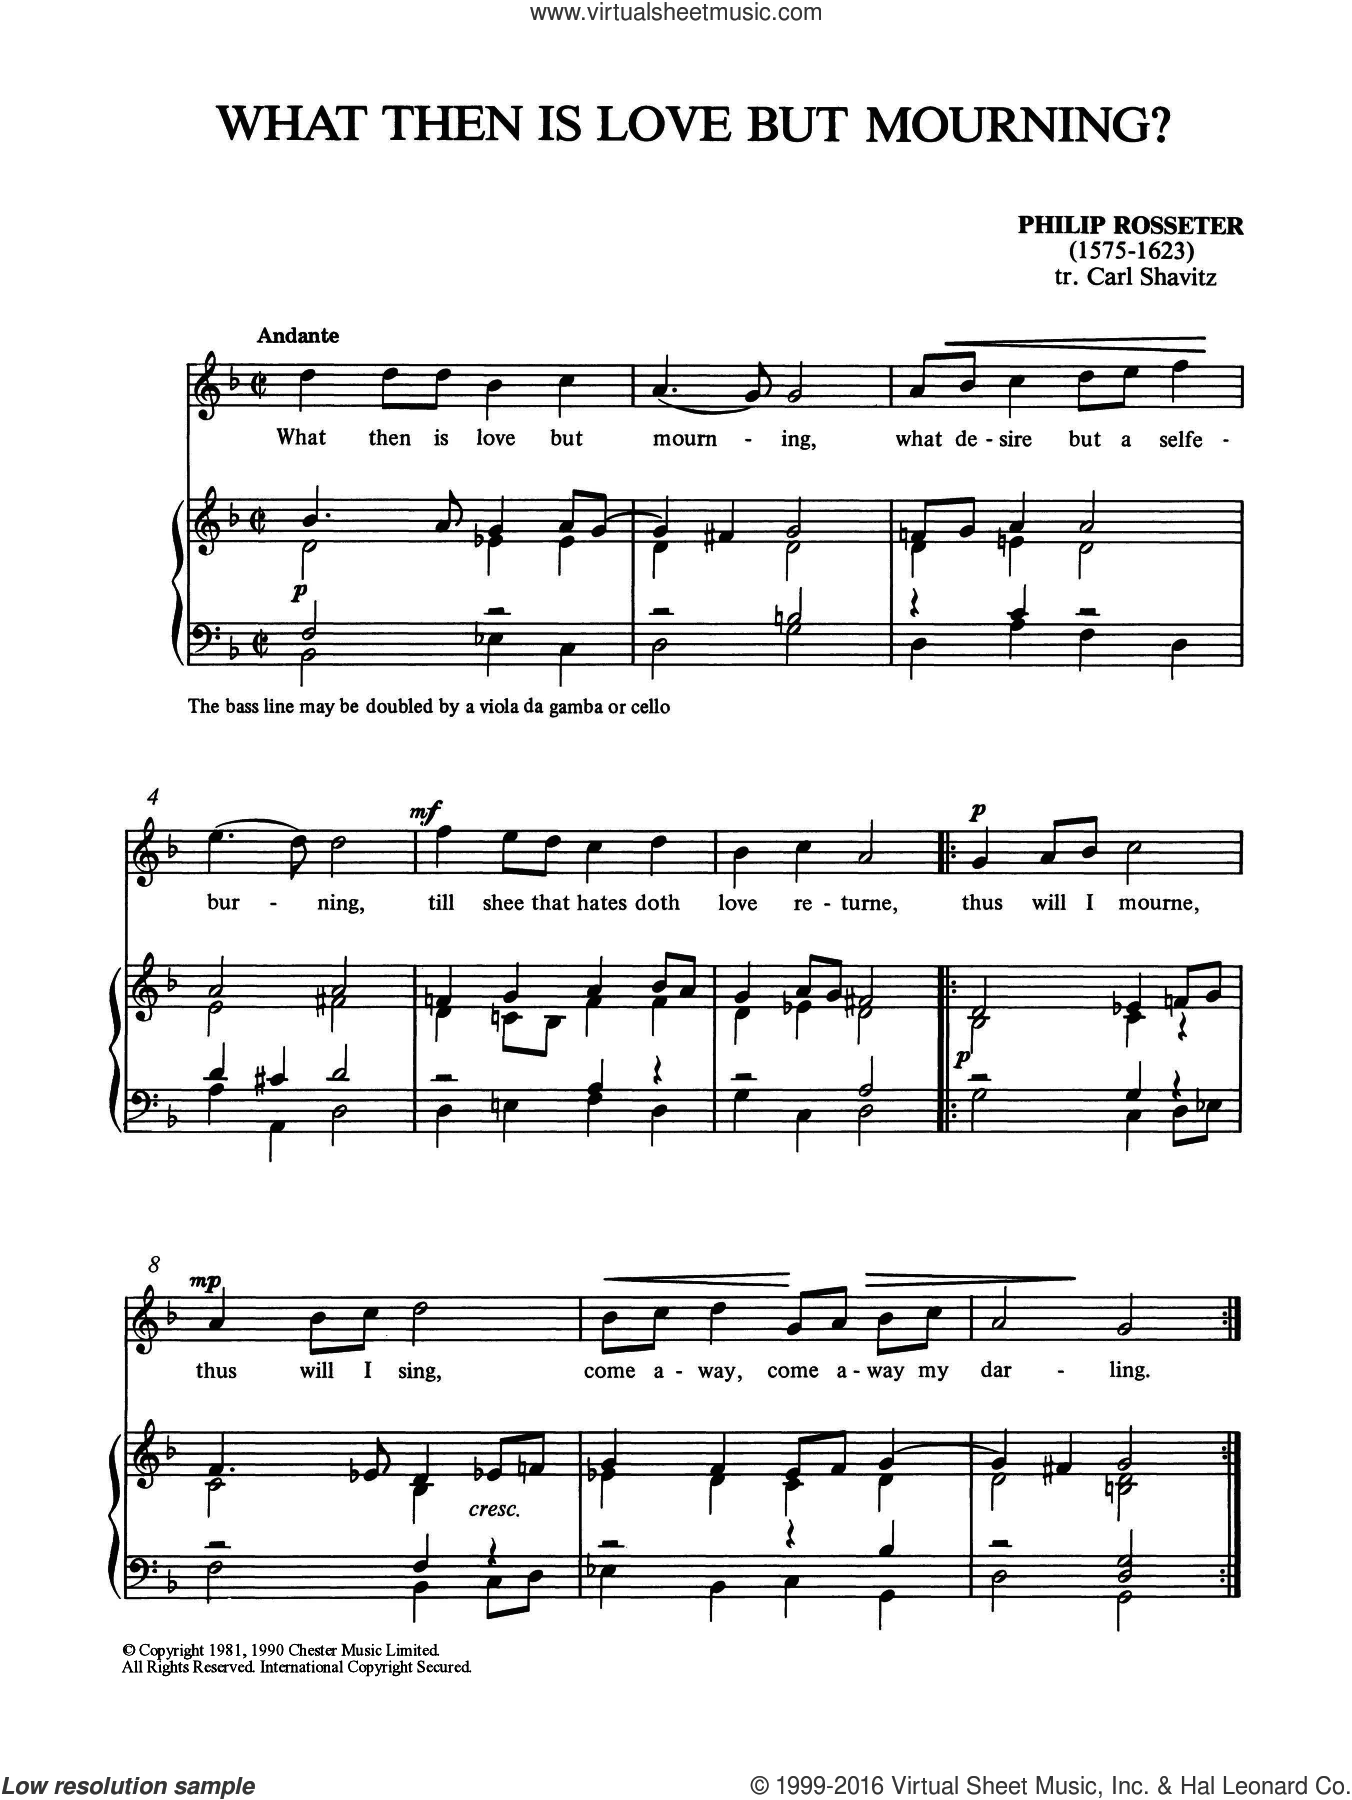 What Then Is Love But Mourning? sheet music for voice and piano by Philip Rosseter, classical score, intermediate. Score Image Preview.